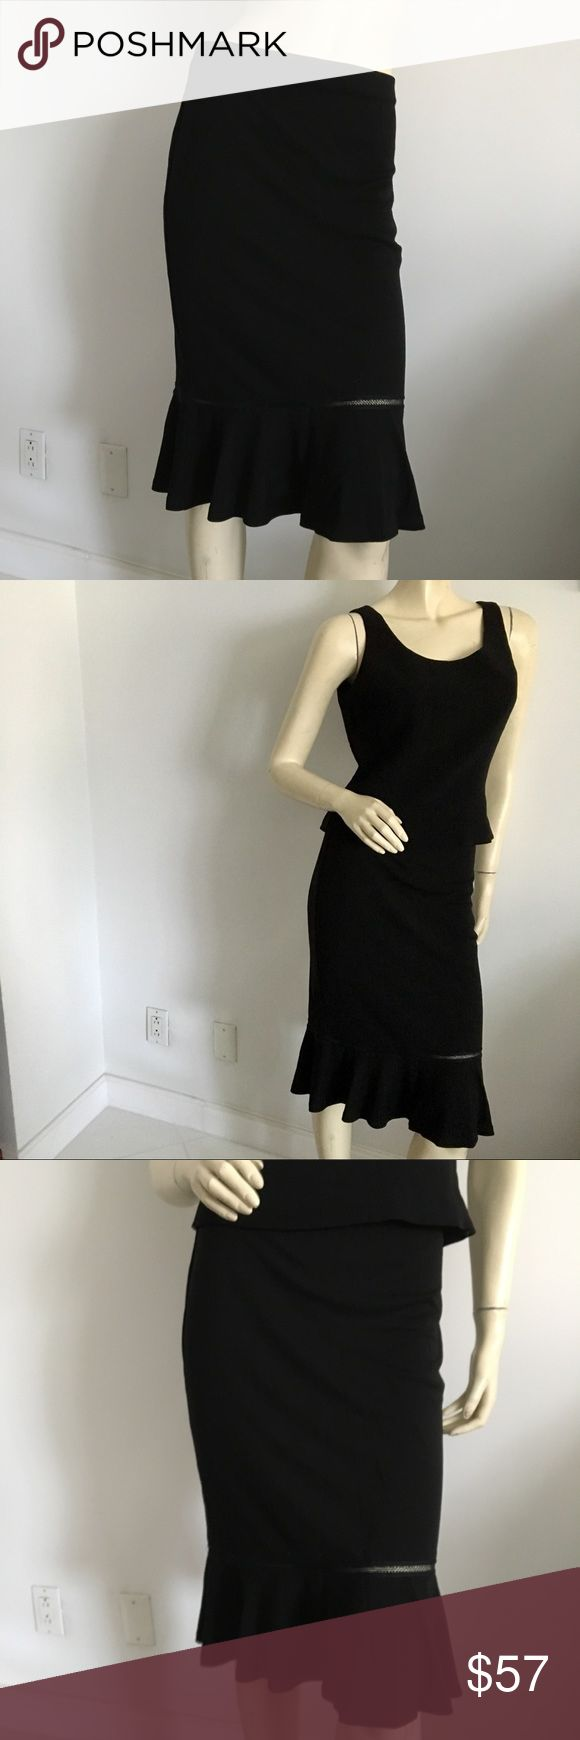 NWOT Vtg max studio stretch trumpet skirt NWOT vintage Max studio black stretchy trumpet skirt with lace ribbon above hem. Fit above or over the knee depending on your height (mannequin is 6') Size Small. Made In USA. Max Studio Skirts